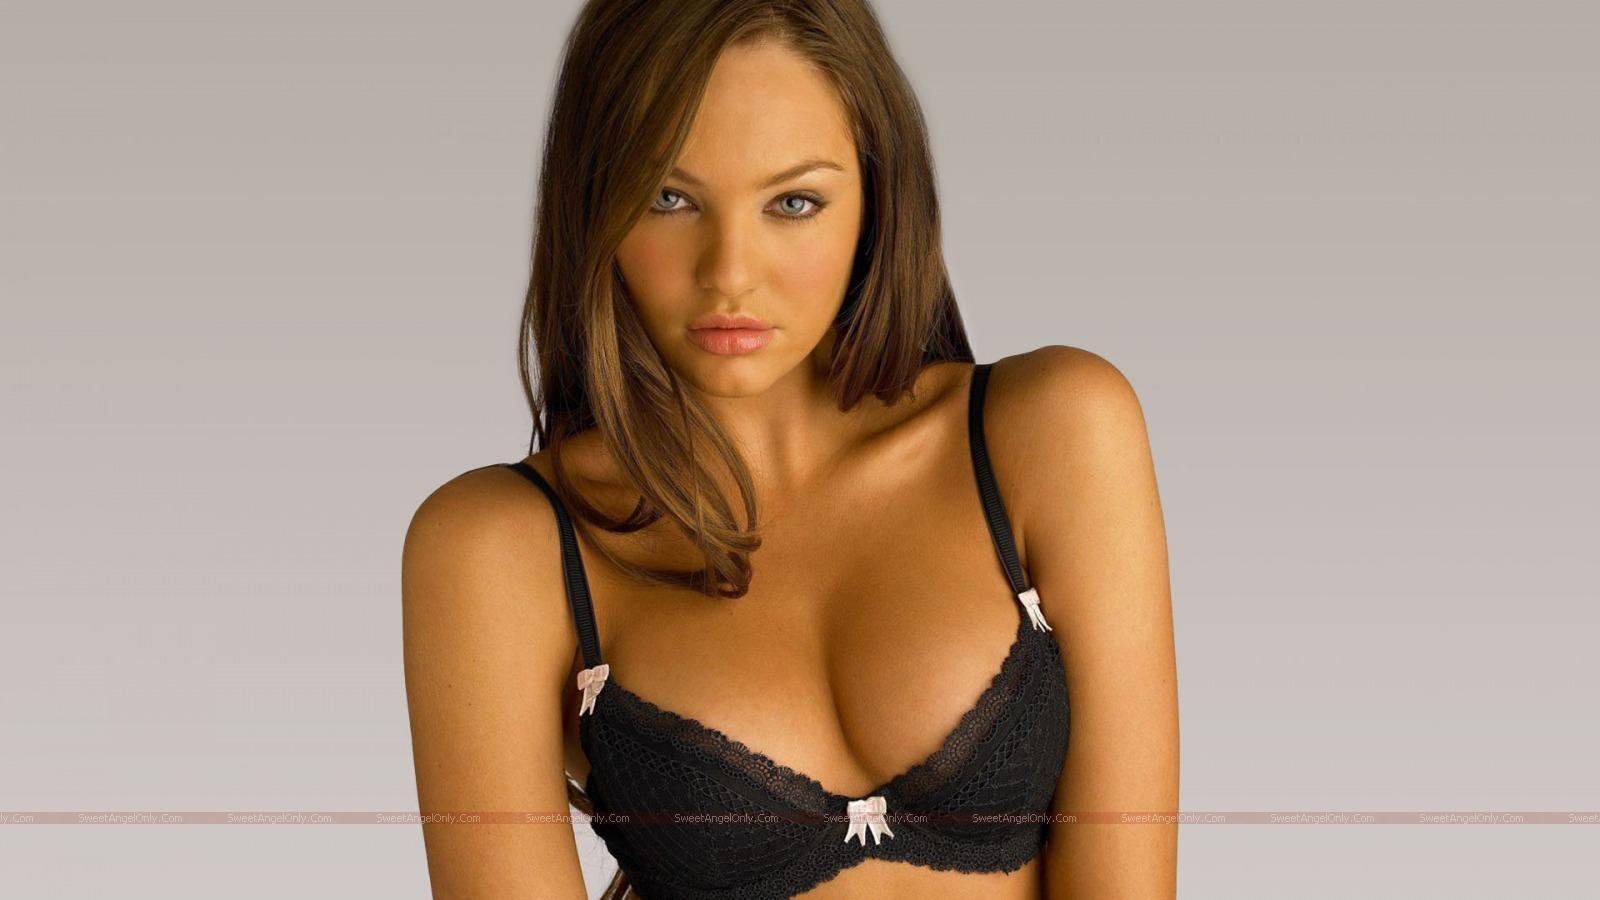 http://4.bp.blogspot.com/_jJPqWg6V3Y8/TTl-wrneEyI/AAAAAAAADp8/wxszPB-t47g/s1600/hollywood_hot_actress_wallpapers_34_01.jpg